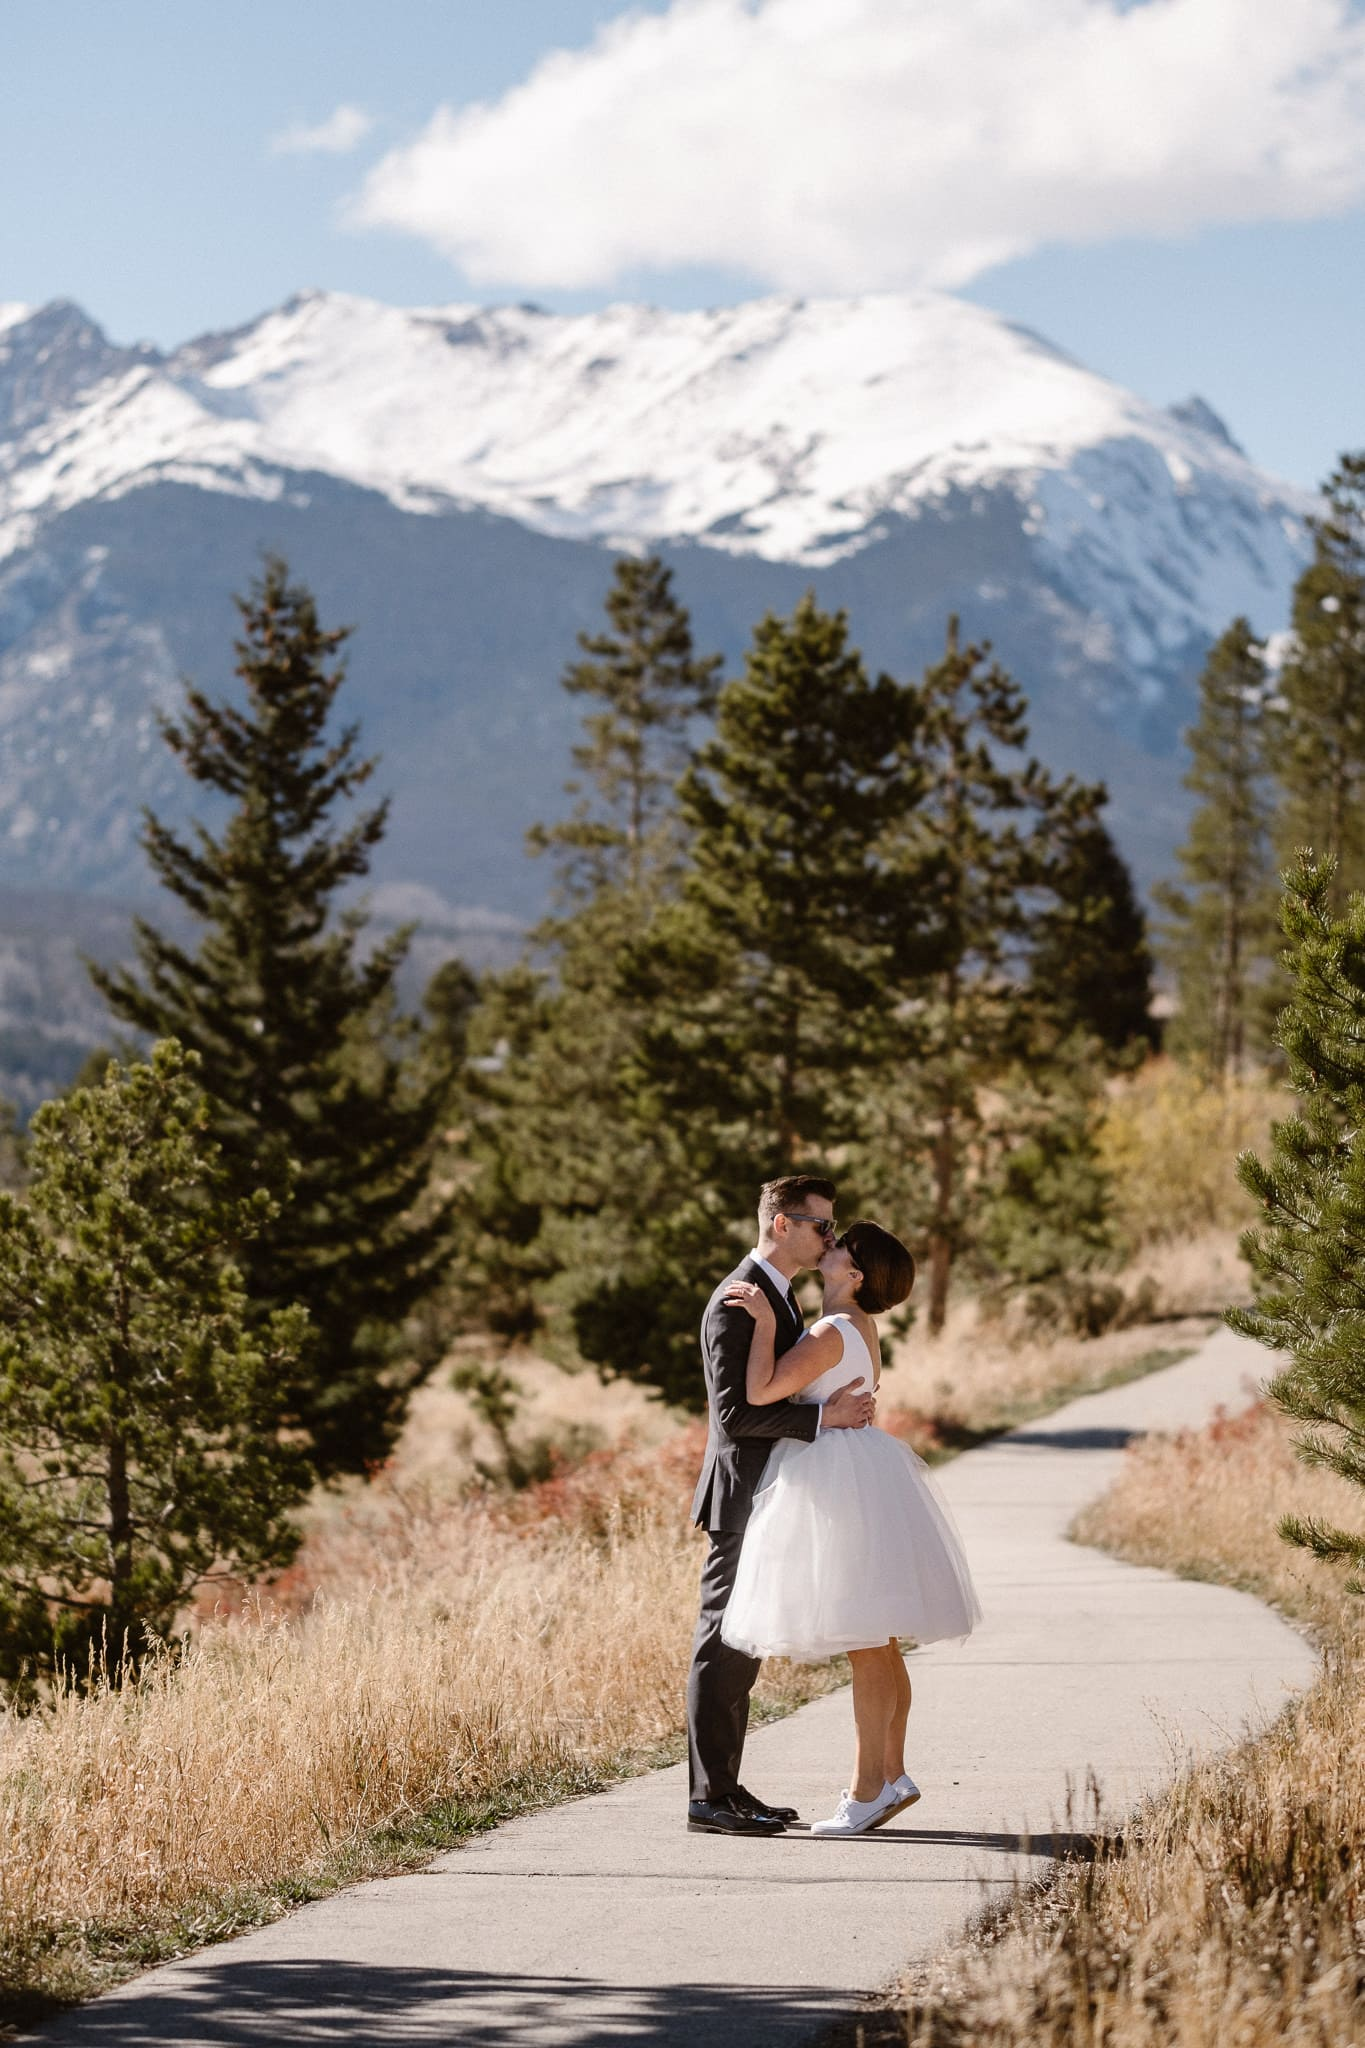 Bride and groom portraits at Lake Dillon in Summit County for Silverthorne Pavilion wedding, Colorado wedding photographer, mountain wedding, winter wedding